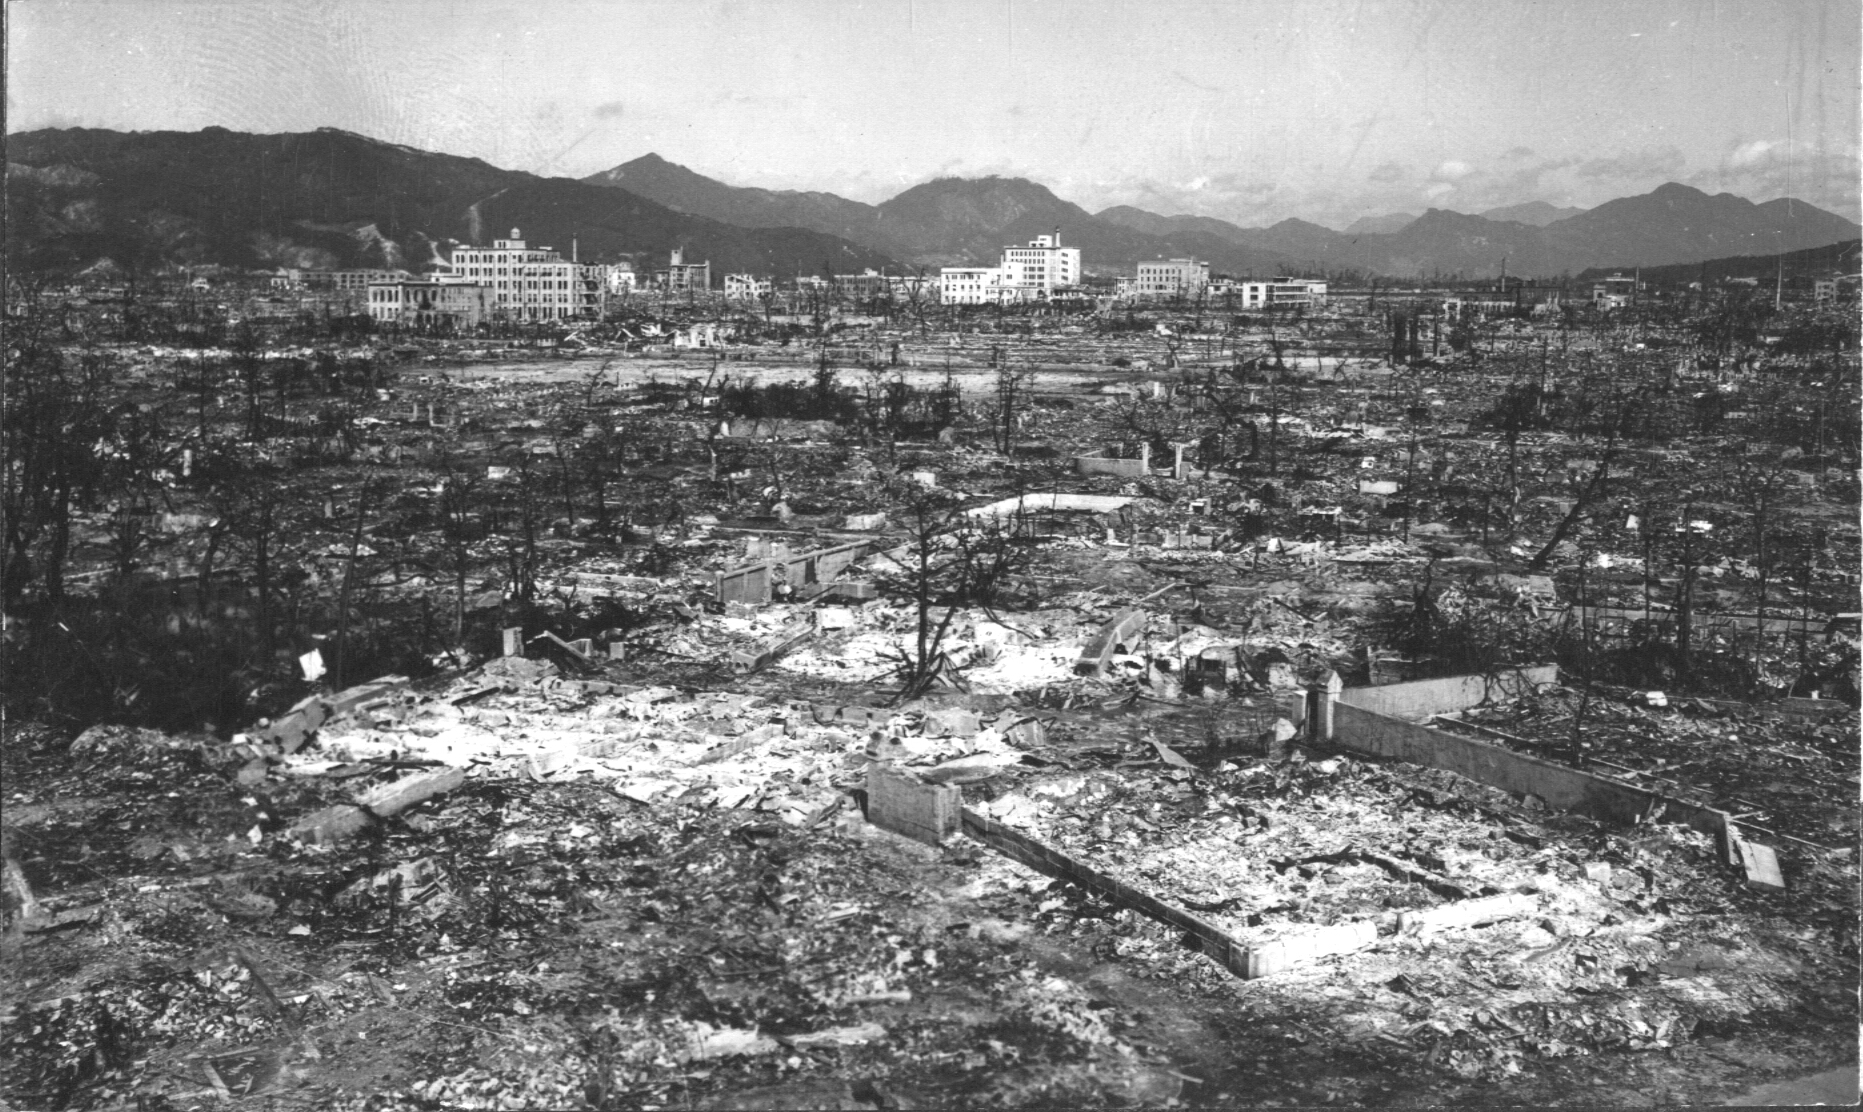 Photograph of Hiroshima after atomic bomb. Buildings have been reduced to rubble. Mountains are in background.